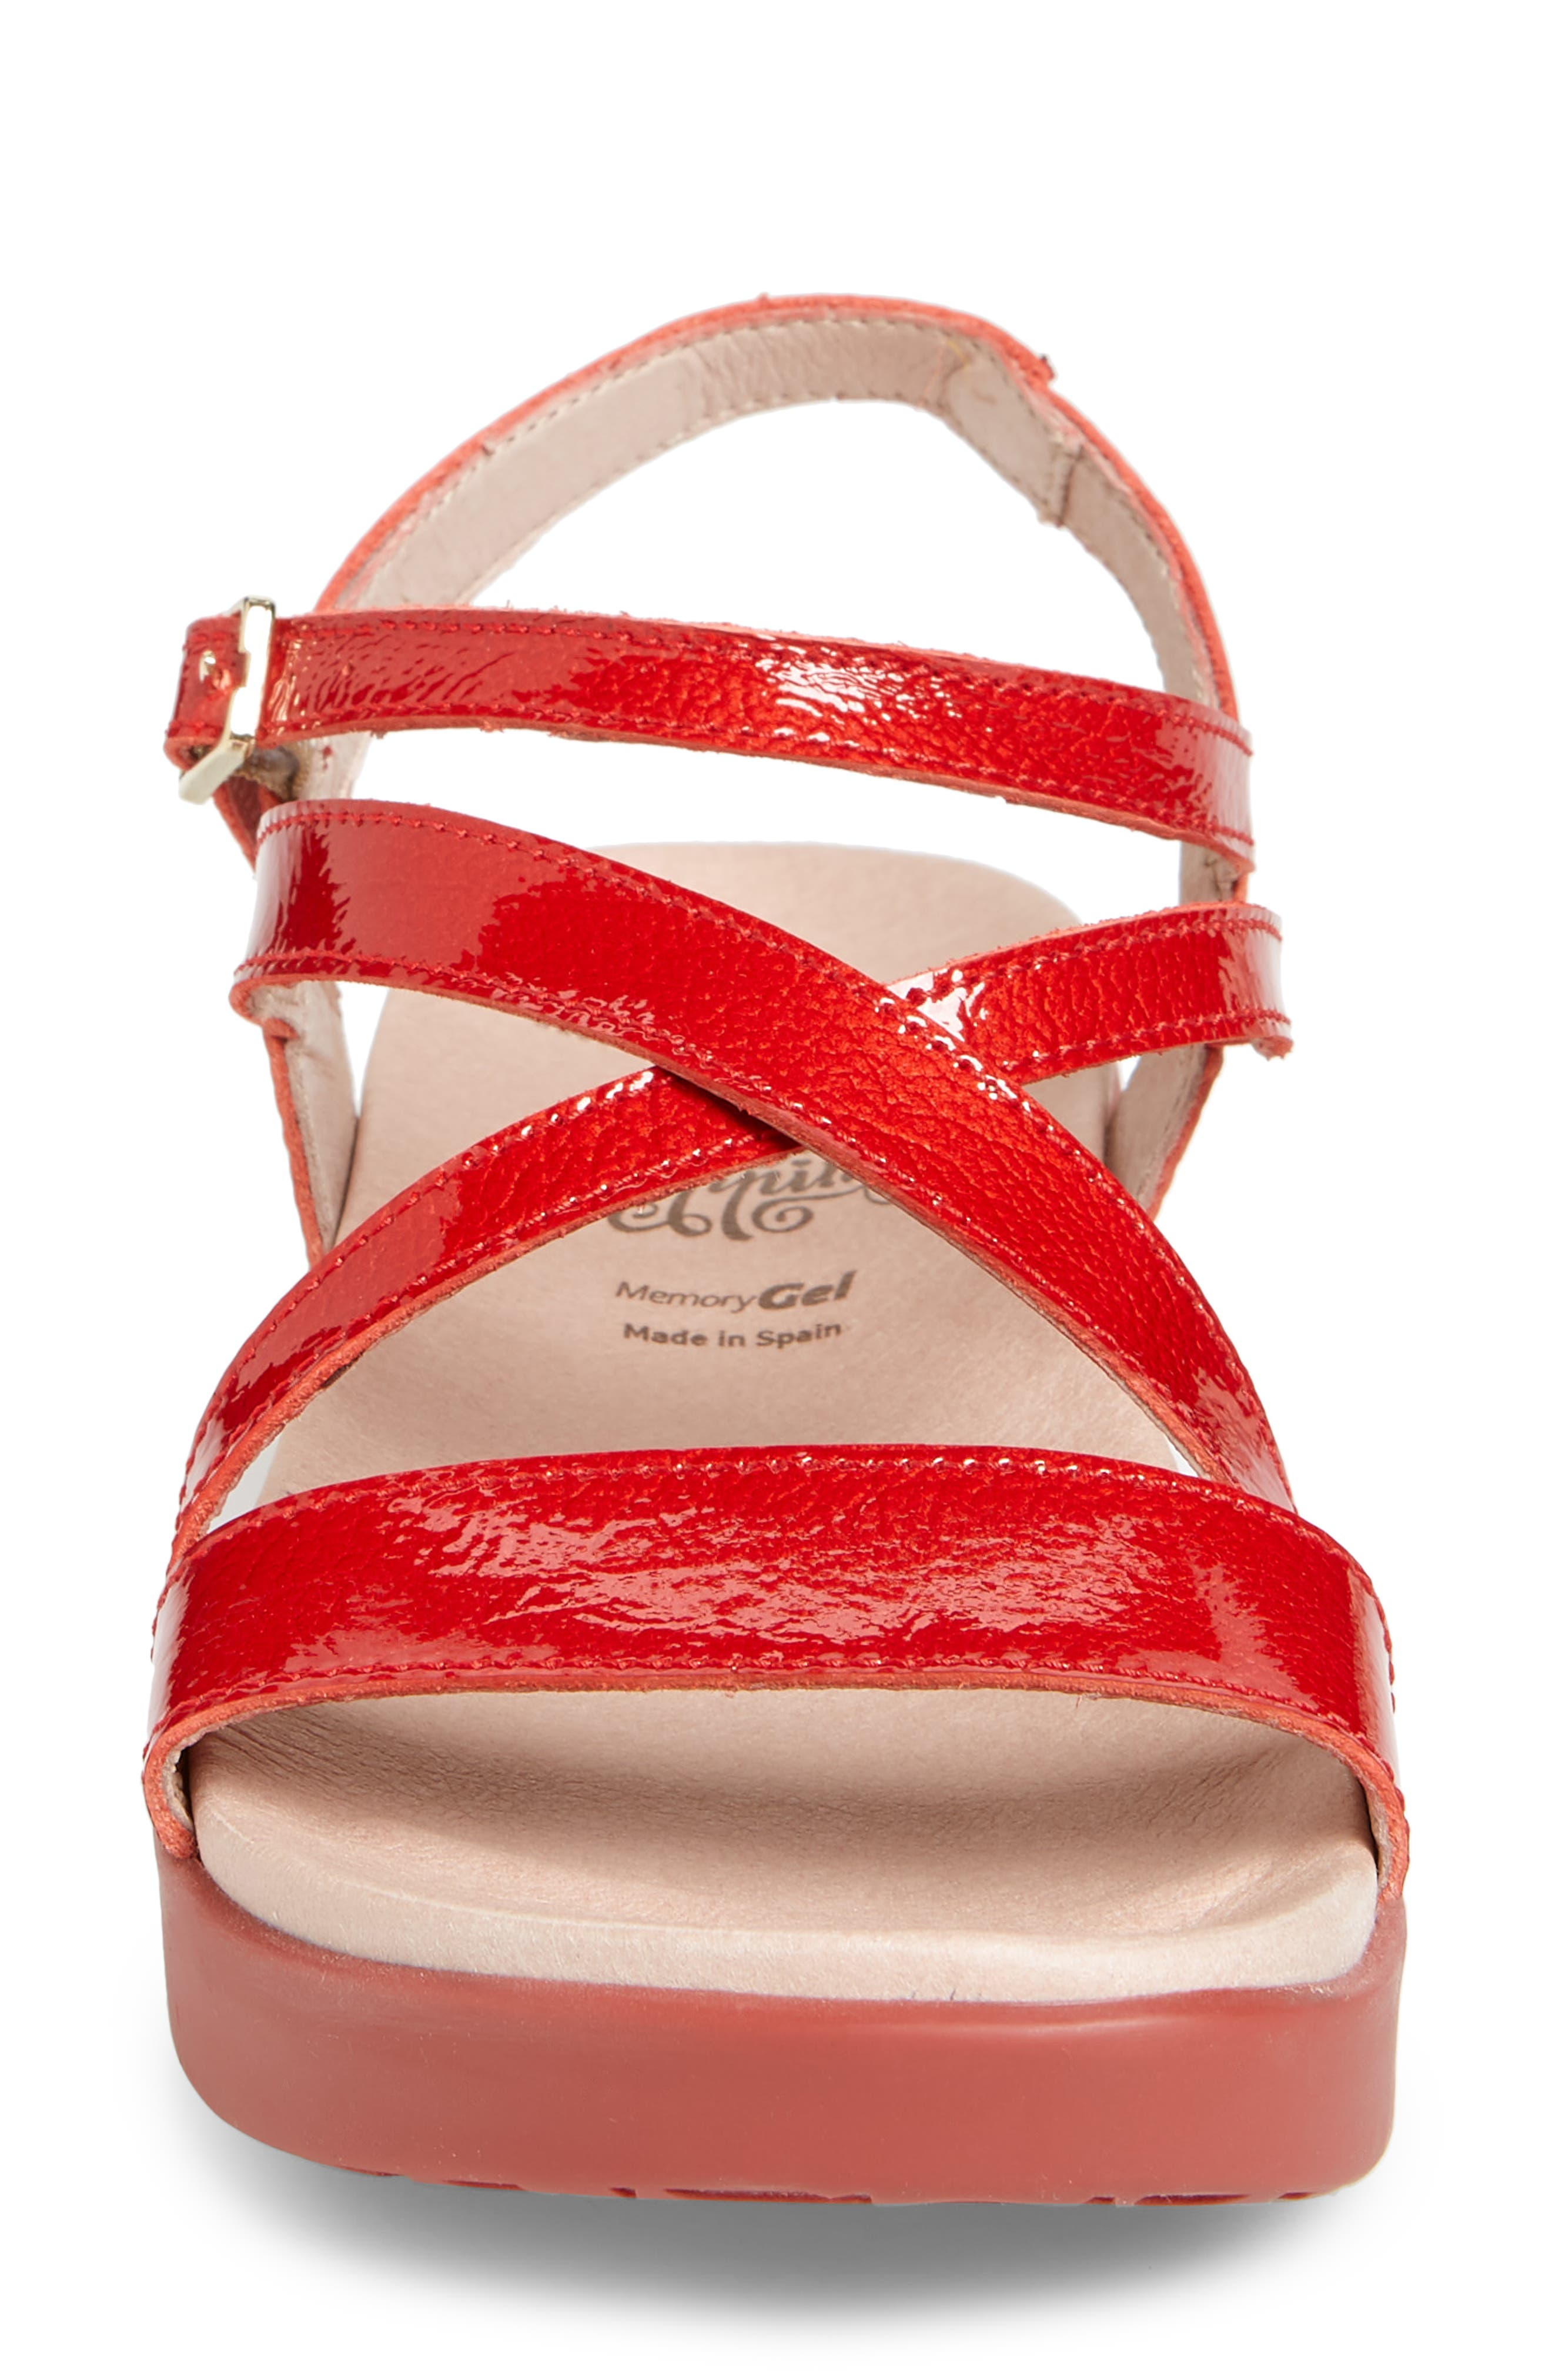 Wedge Sandal,                             Alternate thumbnail 4, color,                             Red Patent Leather